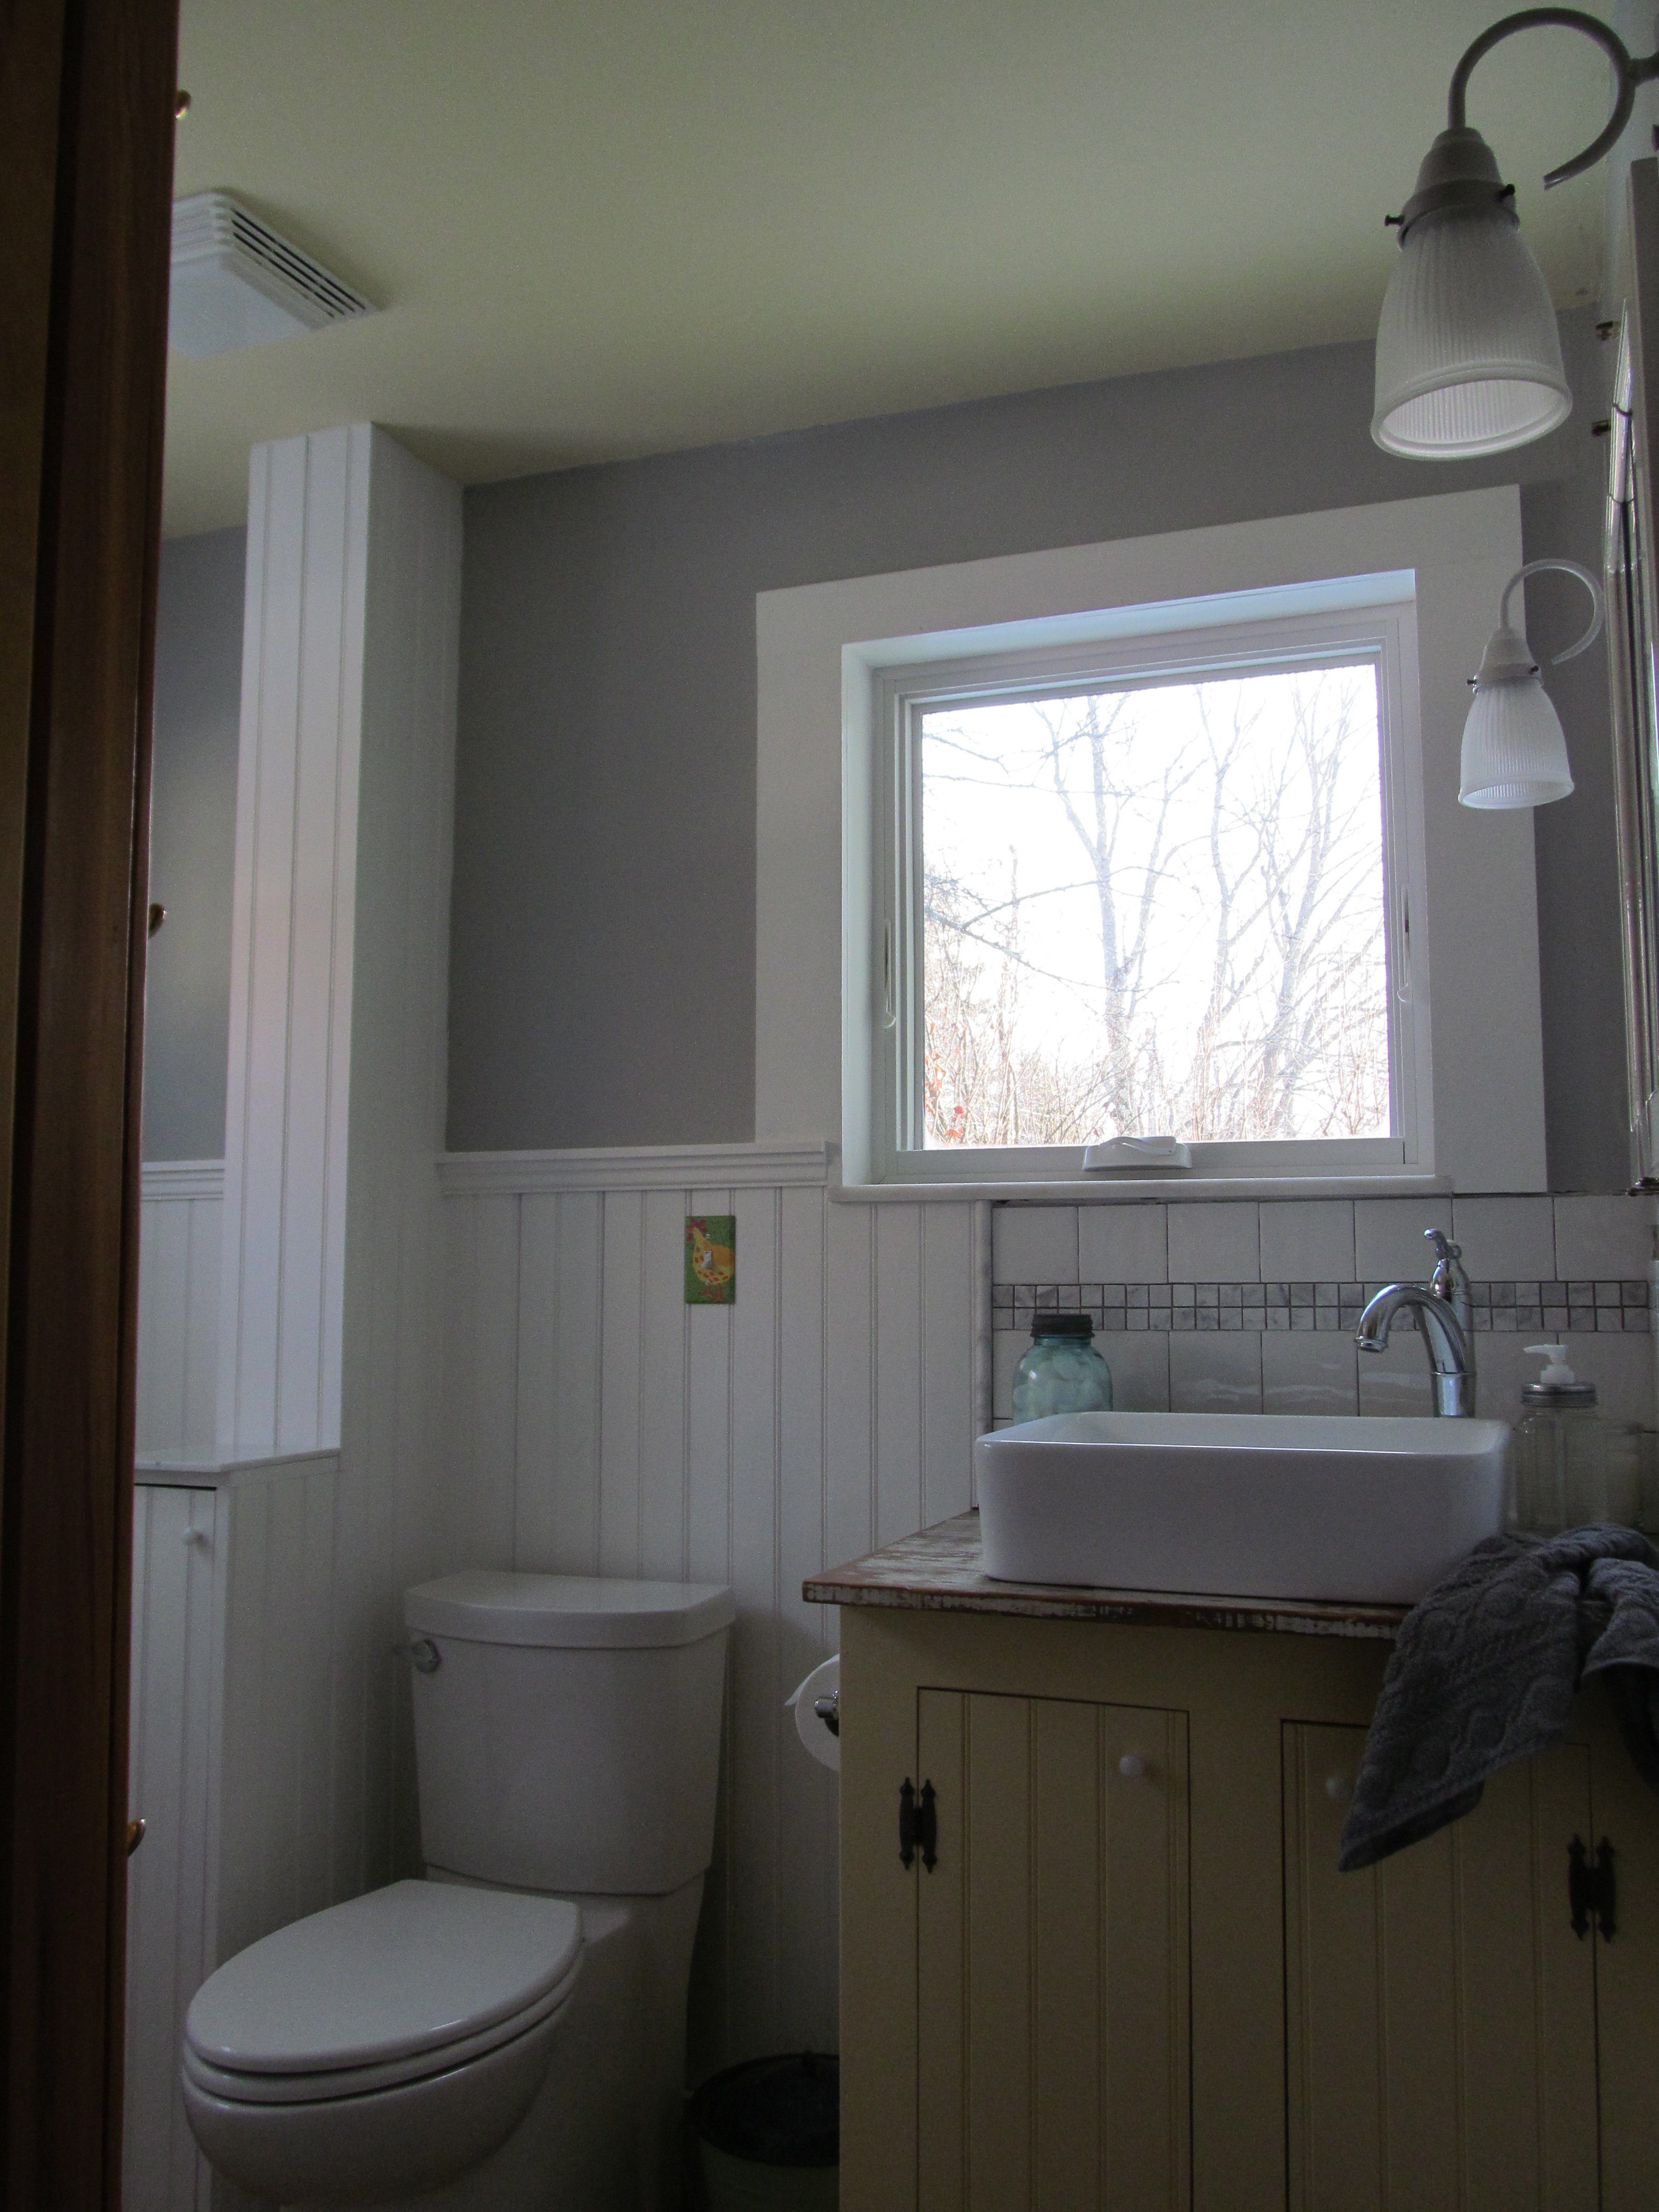 Small bathroom paint ideas gray - We Did The Ceiling First And Img_2430